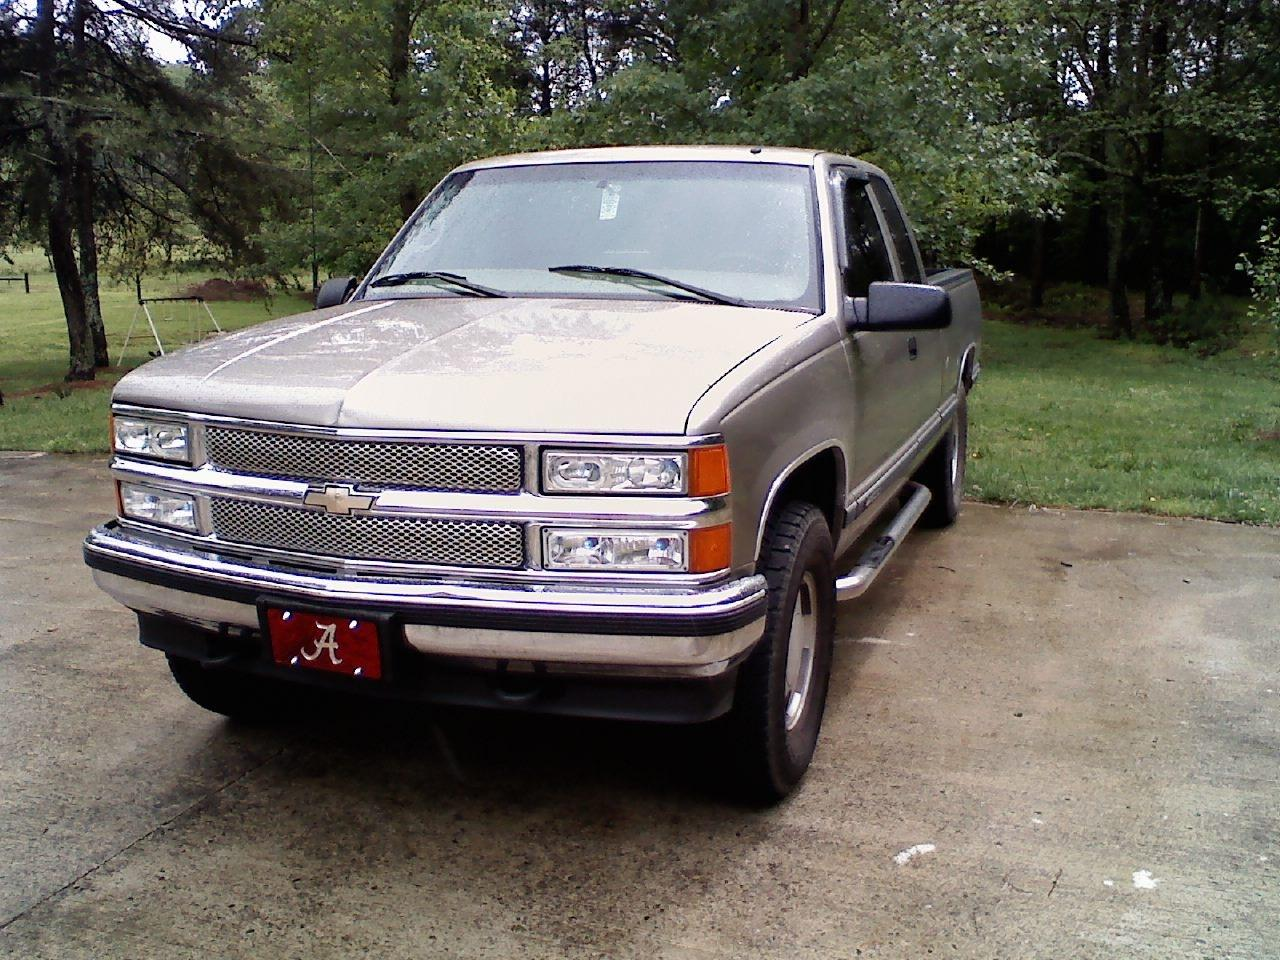 baul plackwell 1998 chevrolet silverado 1500 extended cab specs photos modification info at. Black Bedroom Furniture Sets. Home Design Ideas